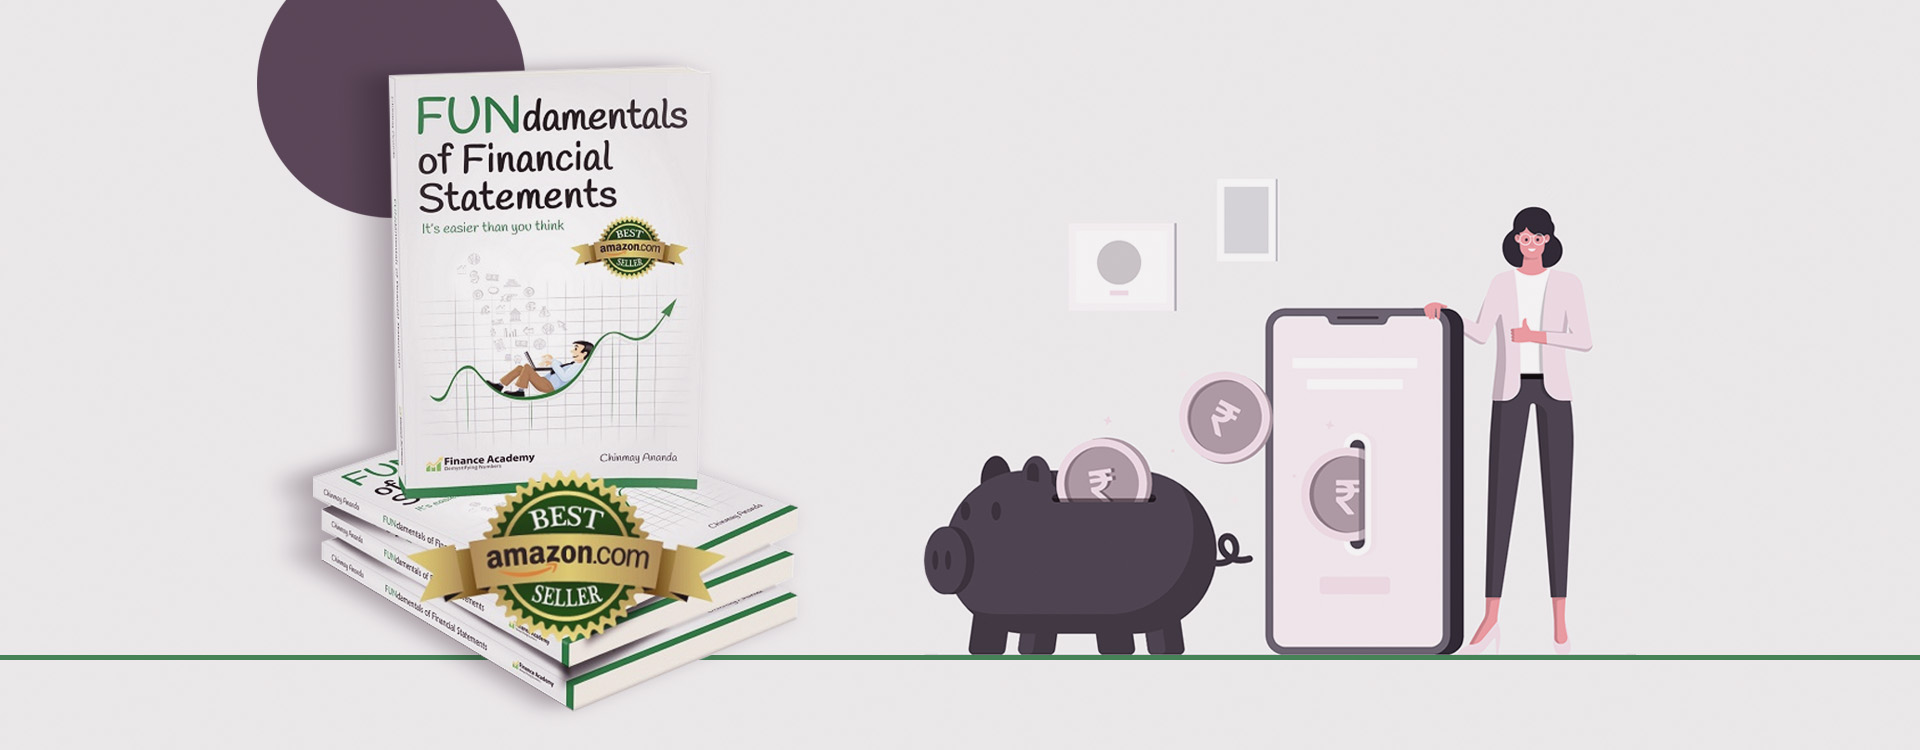 Book Review of FUNdamentals of Financial Statements